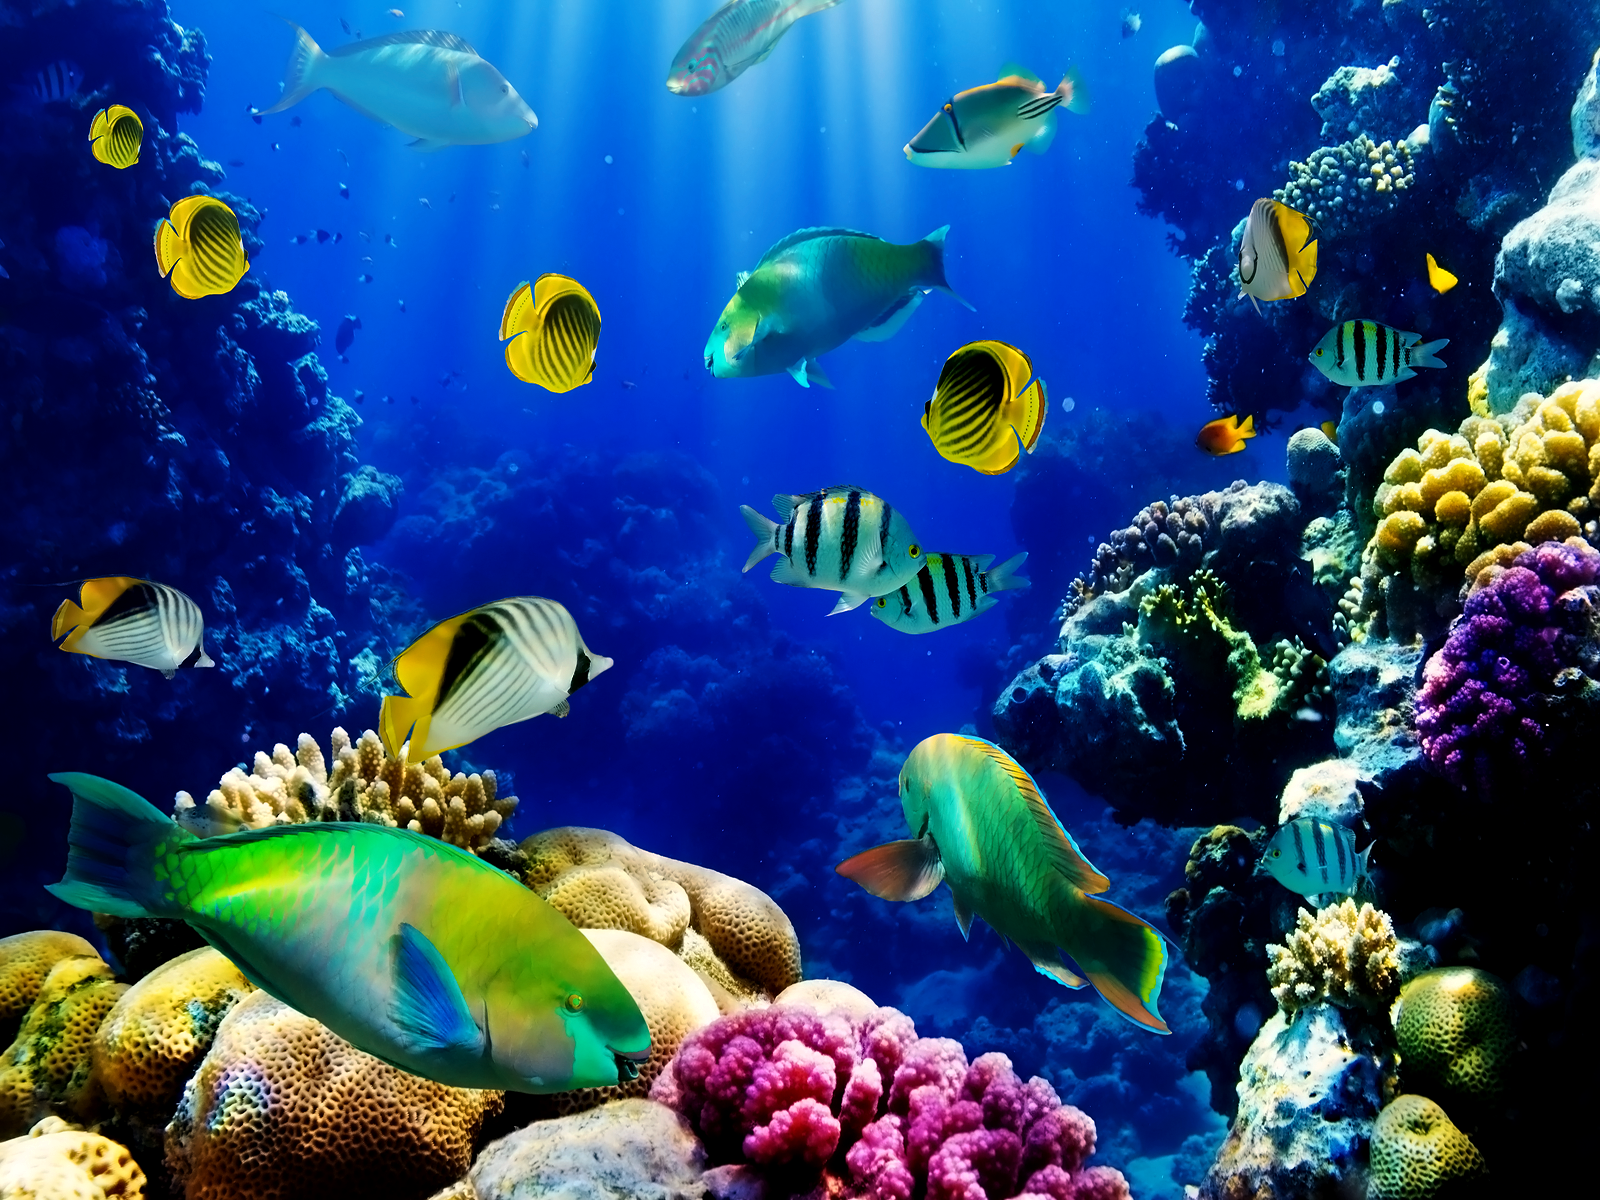 Amazingly Beautiful D Aquarium Live Wallpaper Wallpaper ...